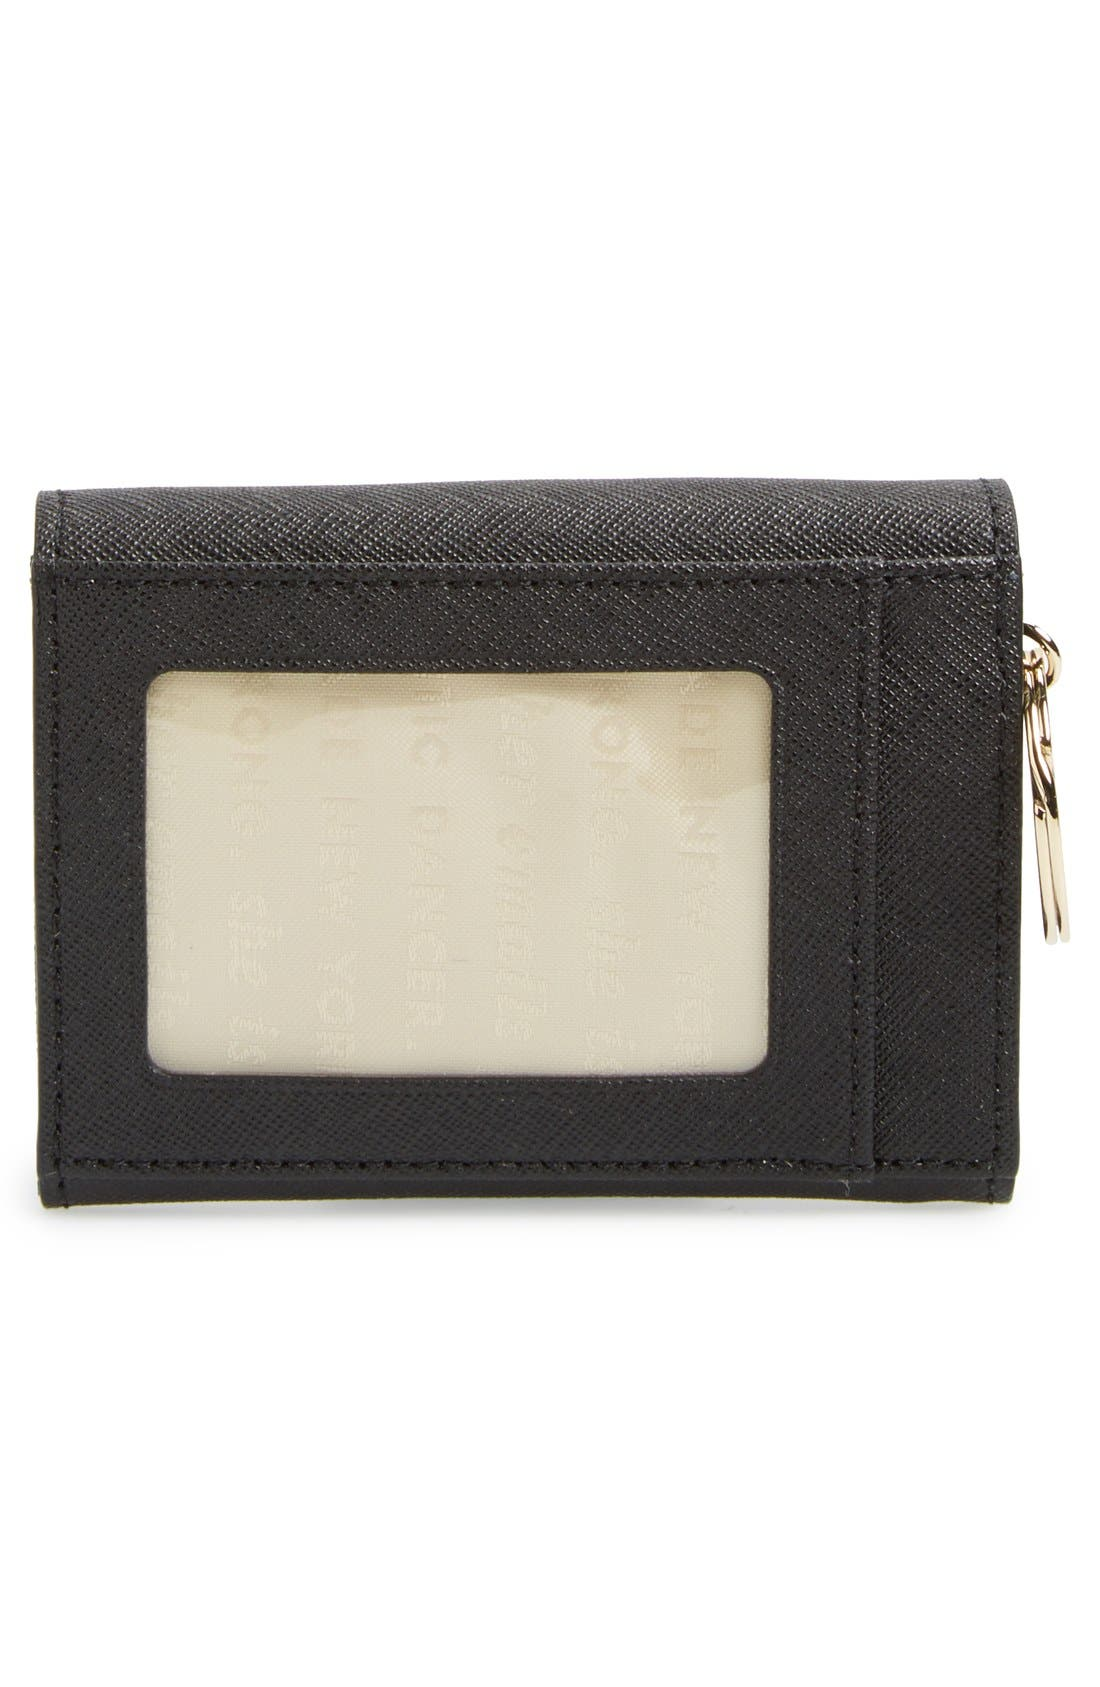 'lily avenue - darla' leather wallet,                             Alternate thumbnail 3, color,                             019